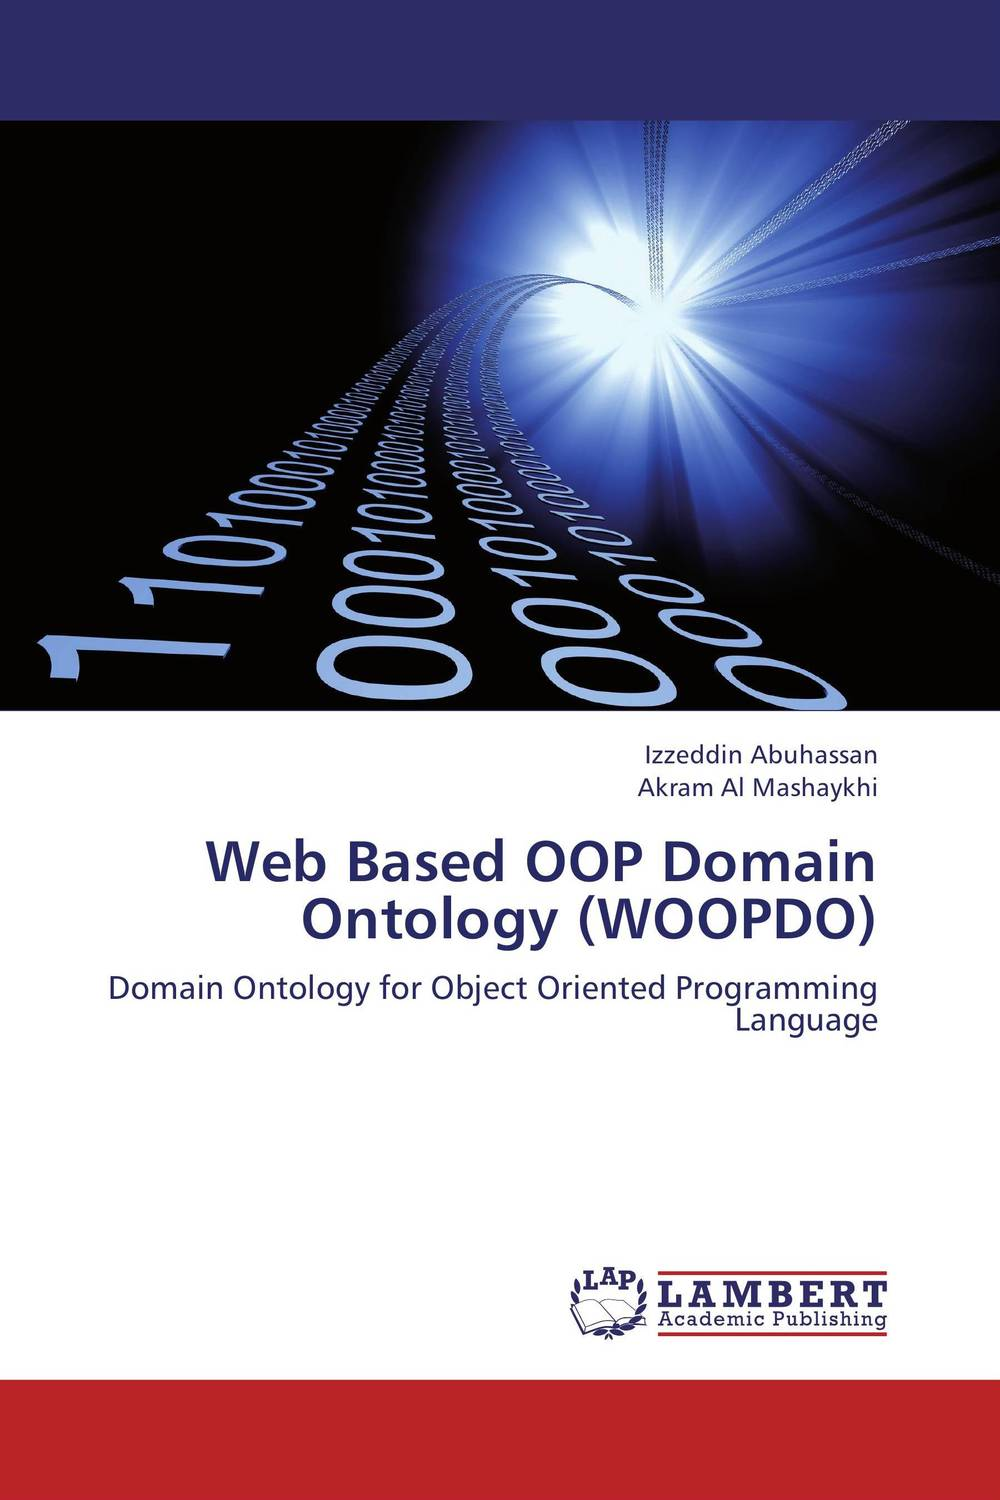 Web Based OOP Domain Ontology (WOOPDO) overview of web based business